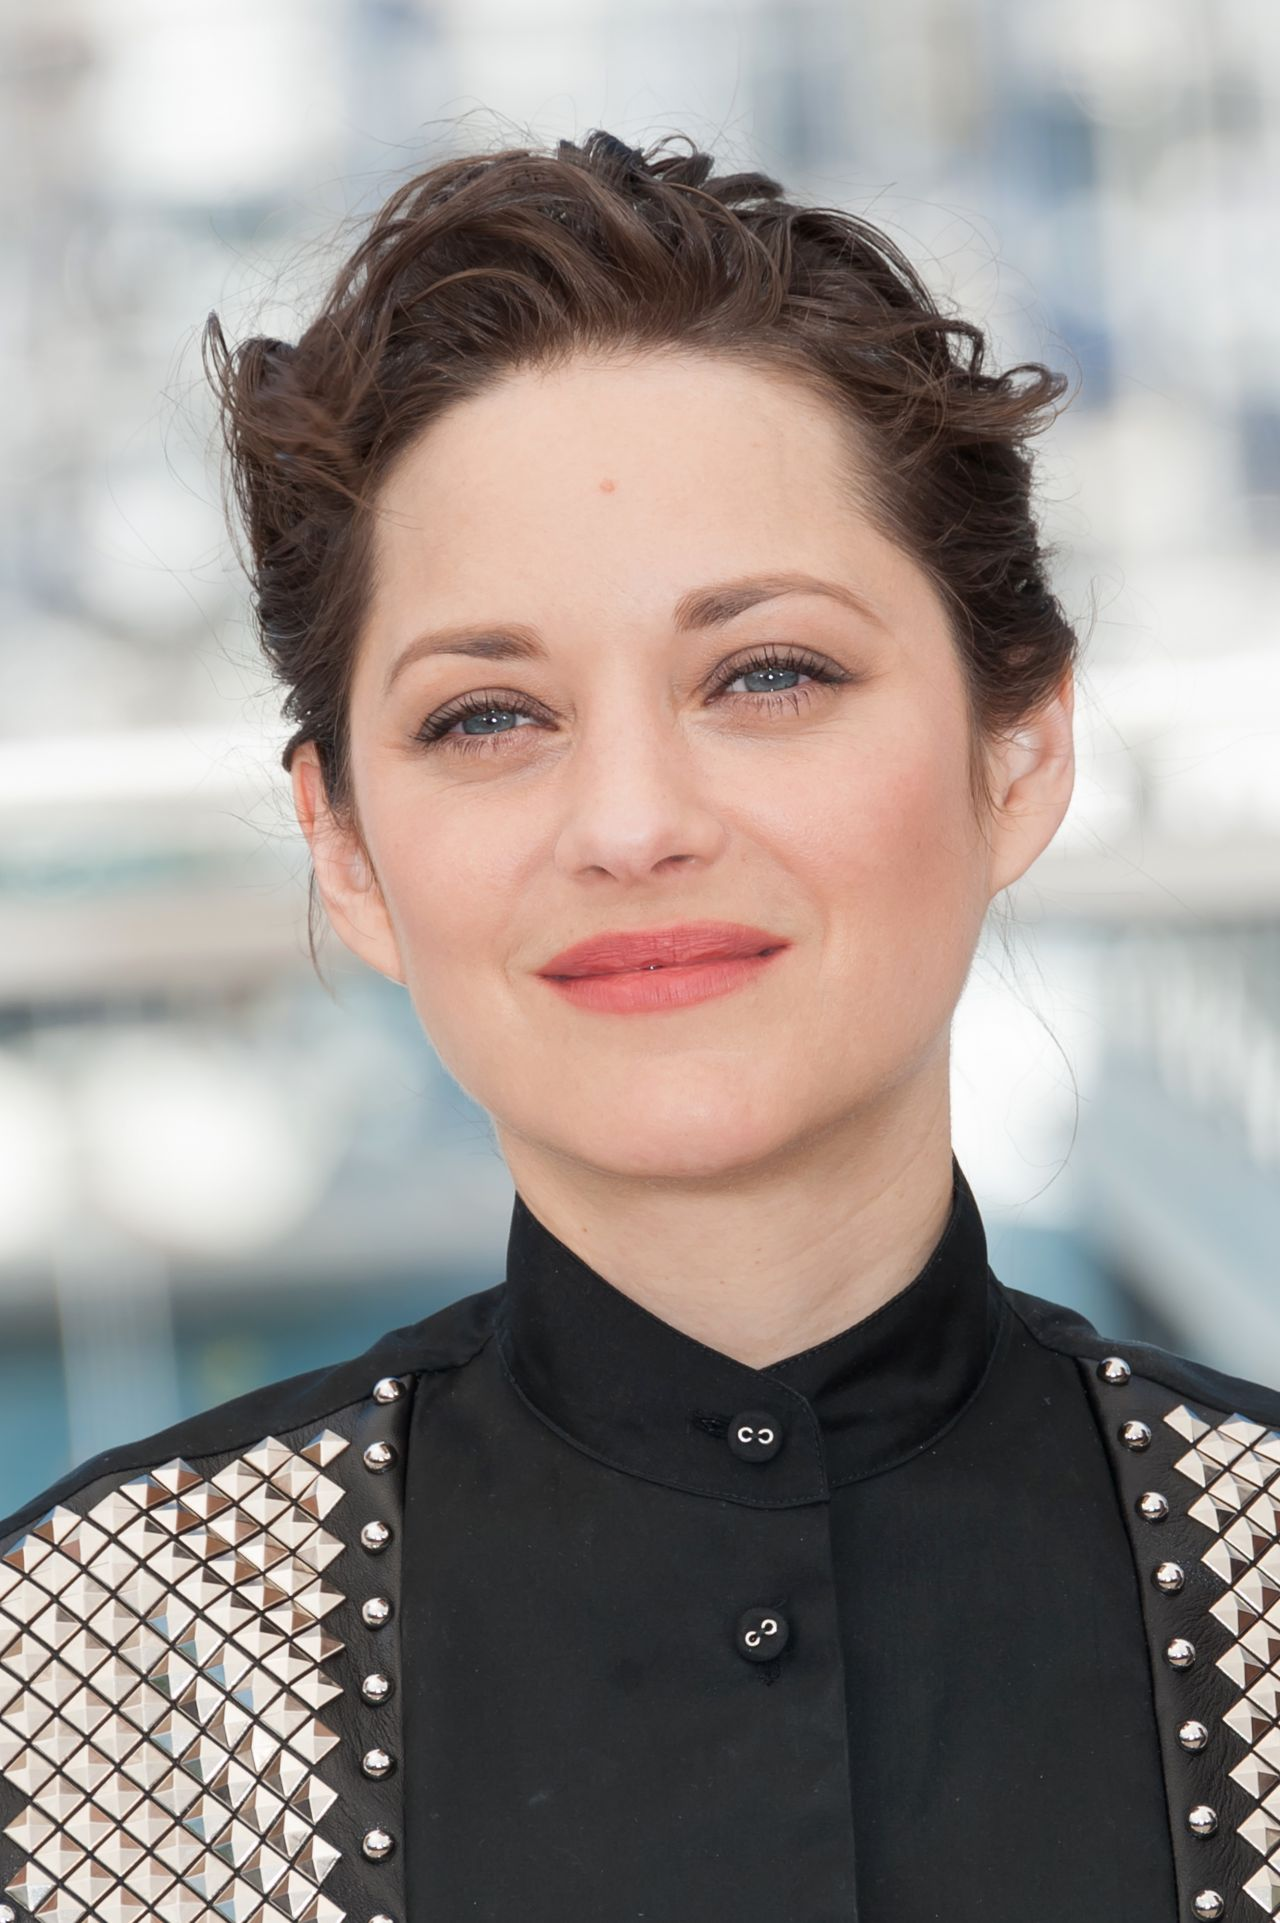 Marion Cotillard nudes (78 photos), leaked Pussy, iCloud, lingerie 2017